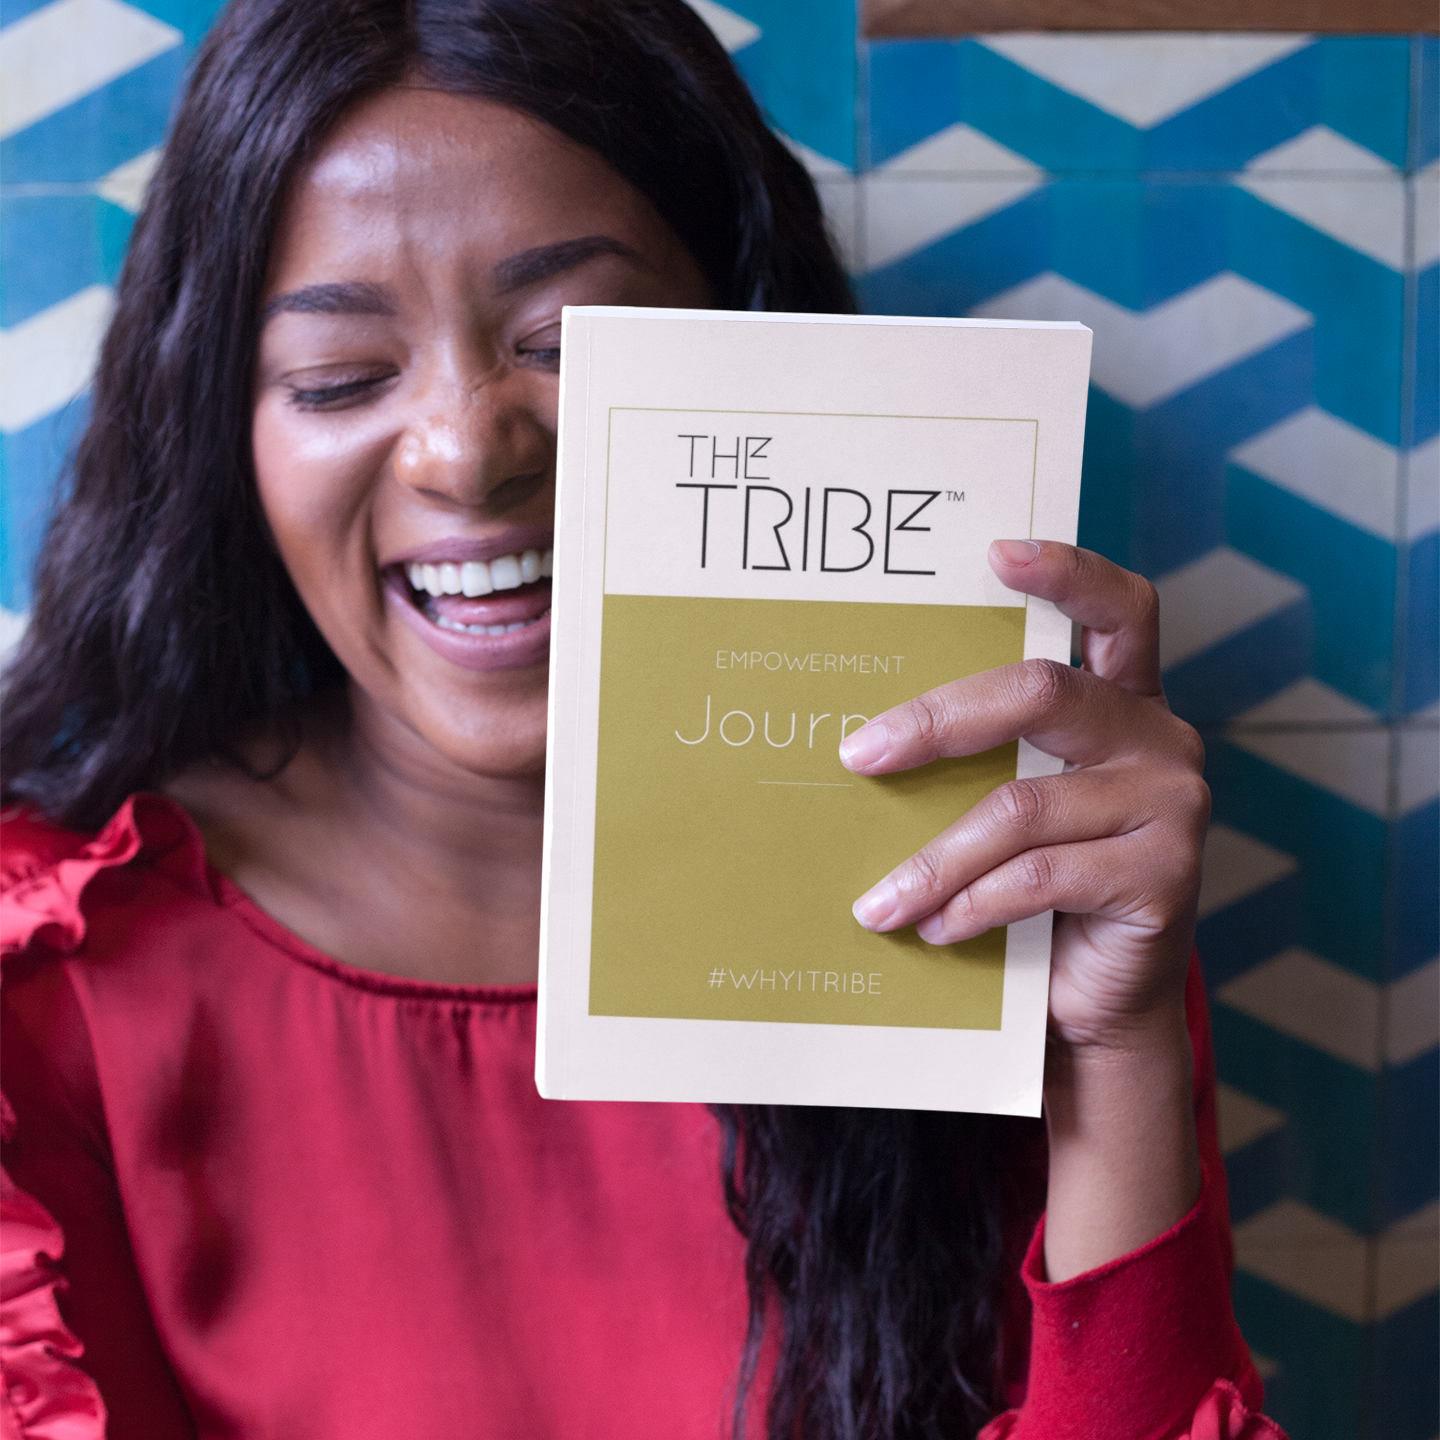 THE TRIBE™ Empowerment Journal 3.png